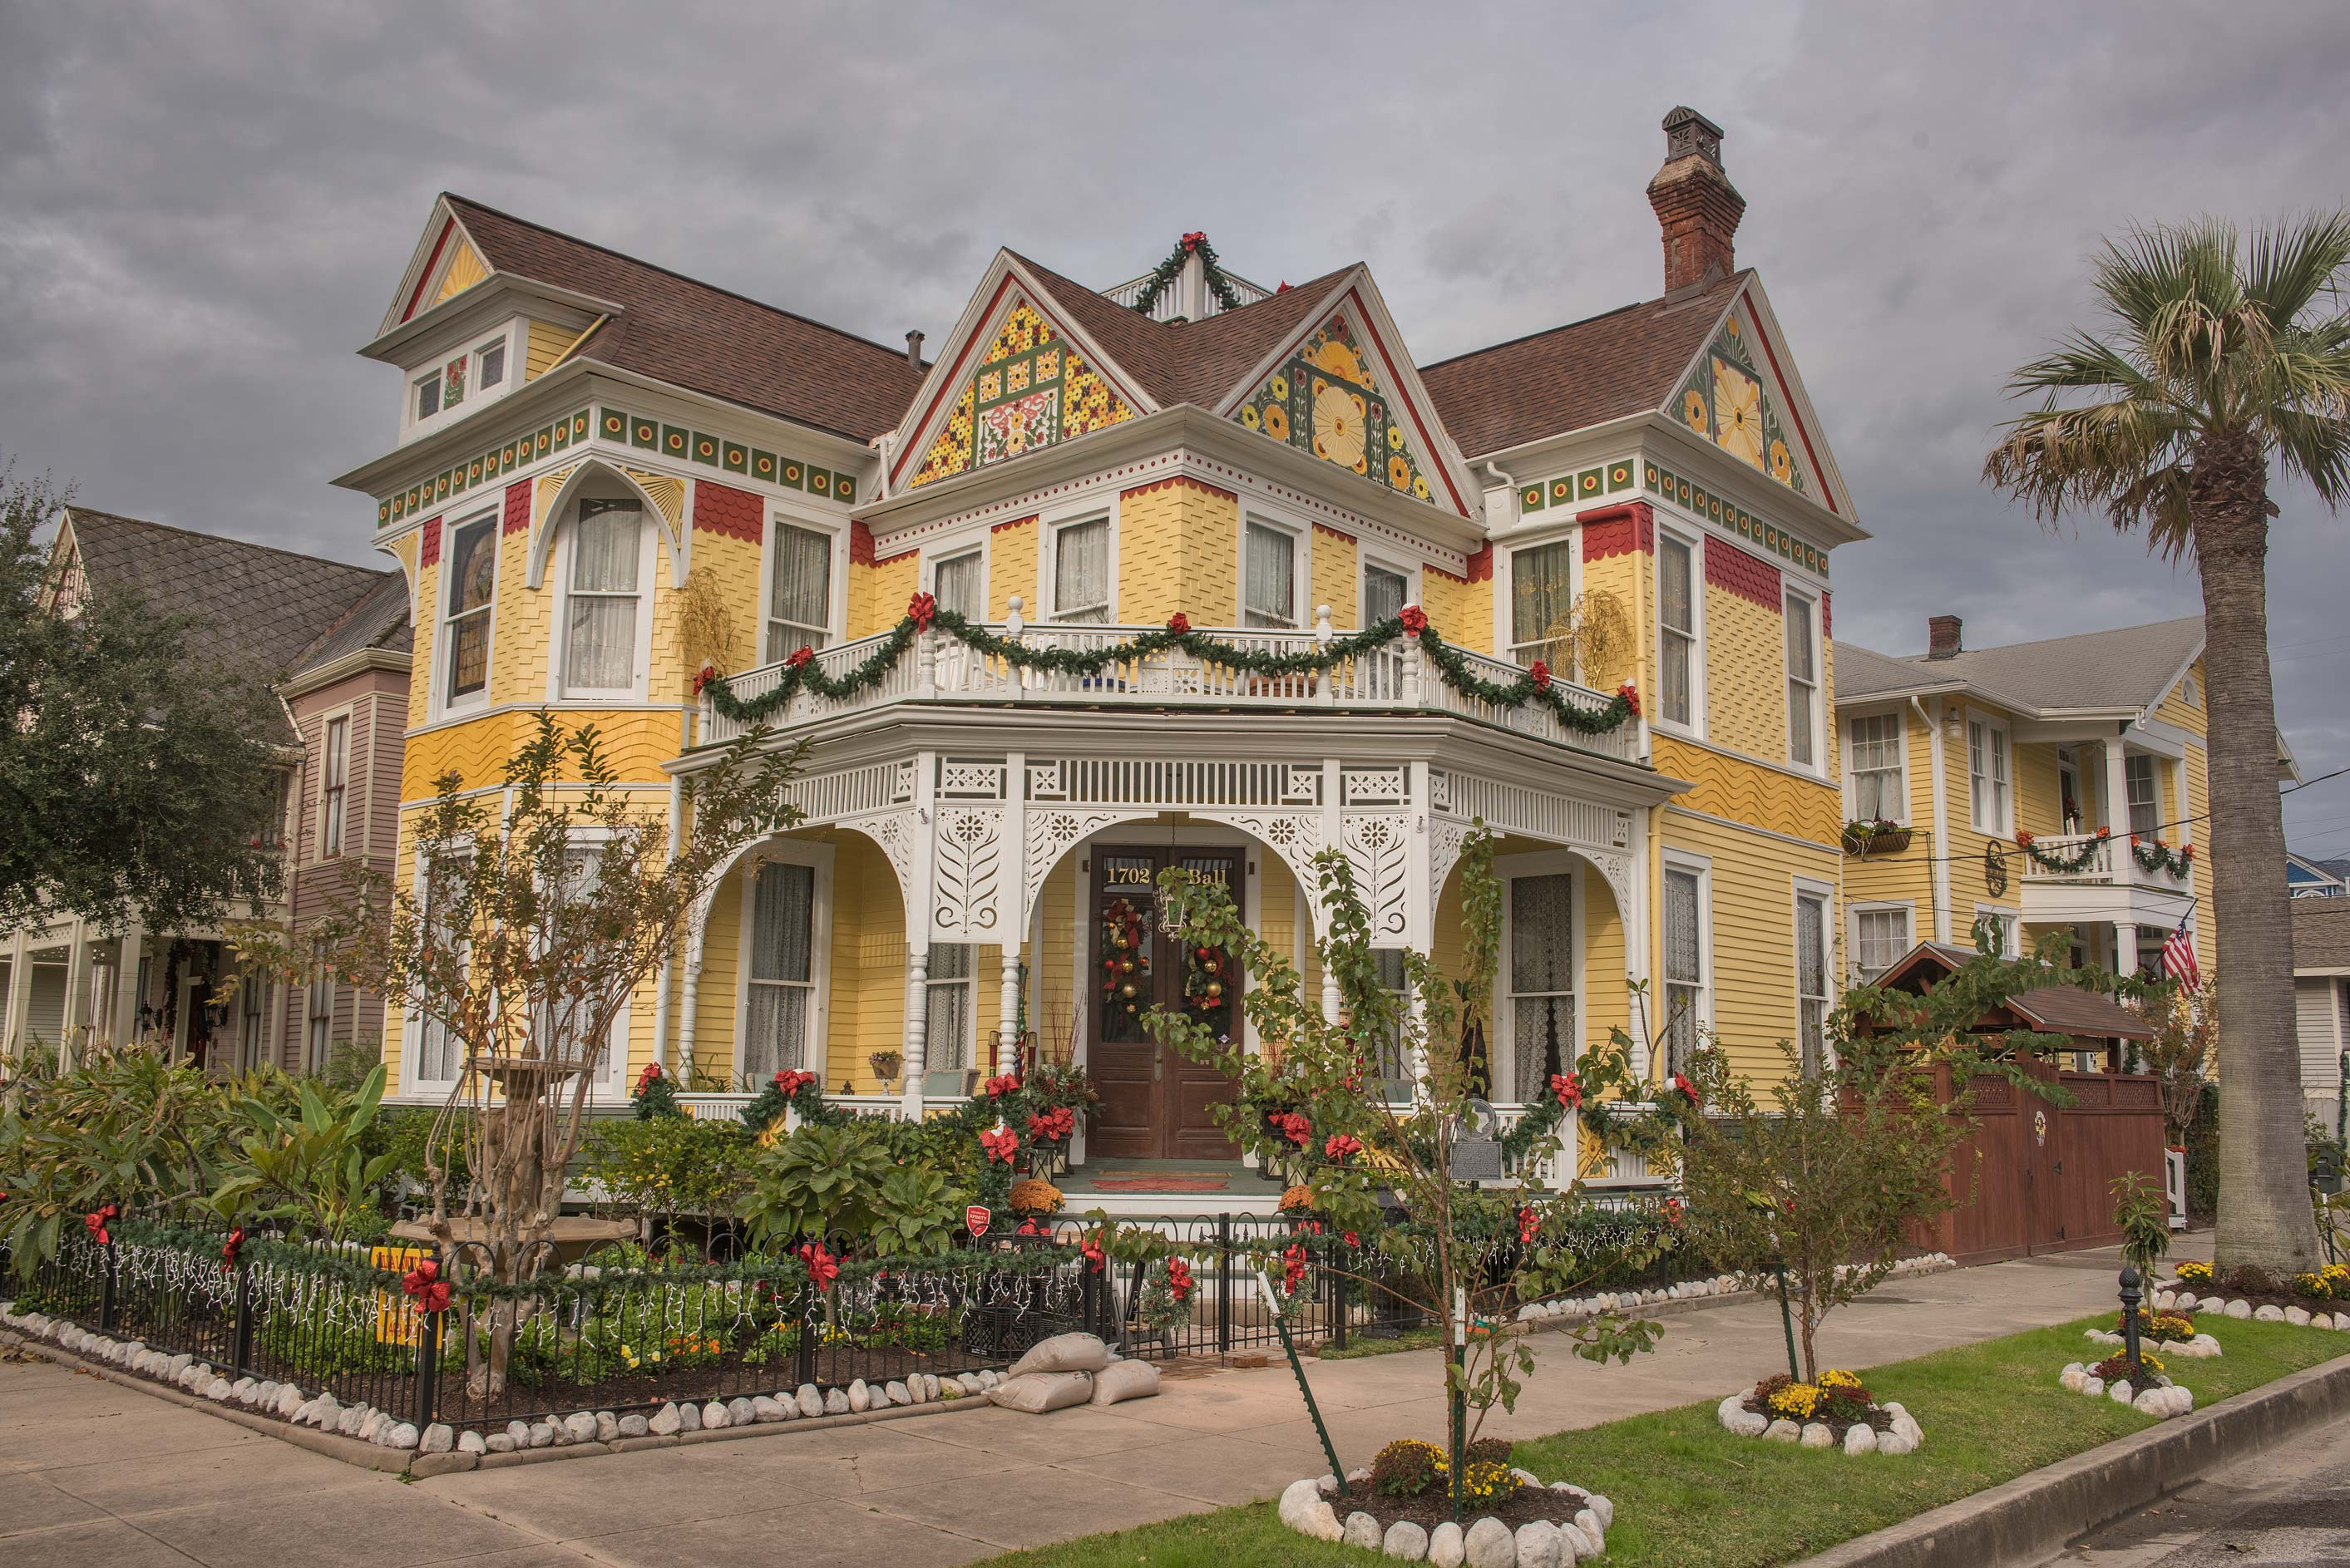 Beissner House (1887) at 1702 Ball St. in East End Historic District in Galveston. Texas